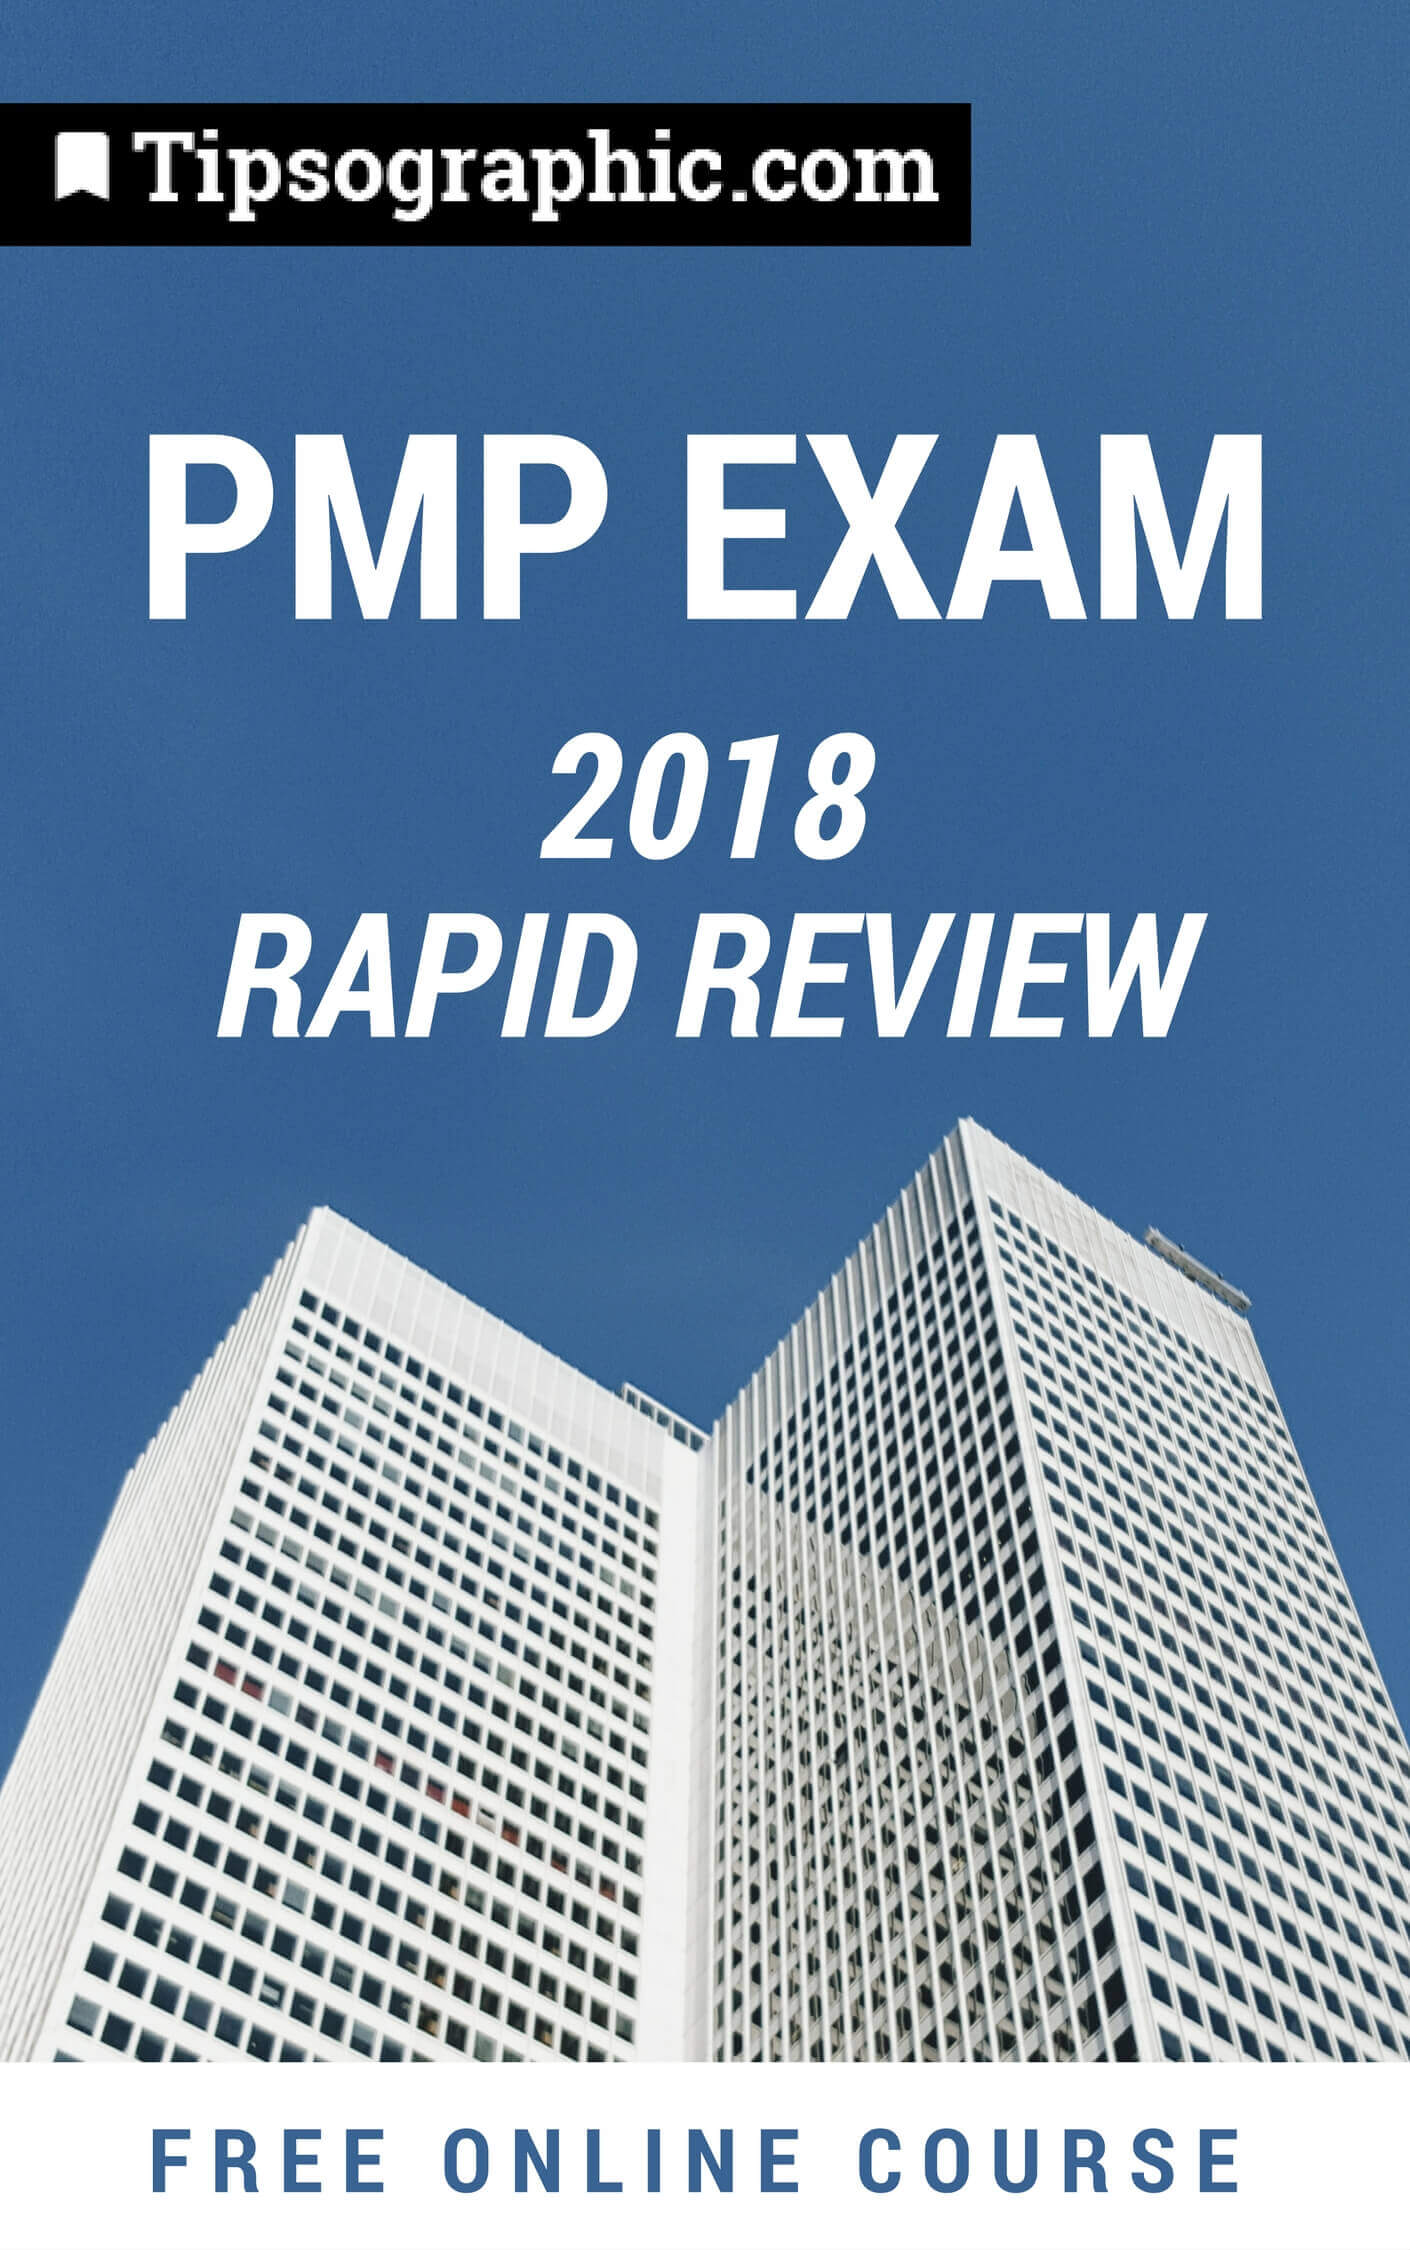 Pmp certification project procurement management terms based on pmp exam 2018 rapid review free online course tipsographic 1betcityfo Images